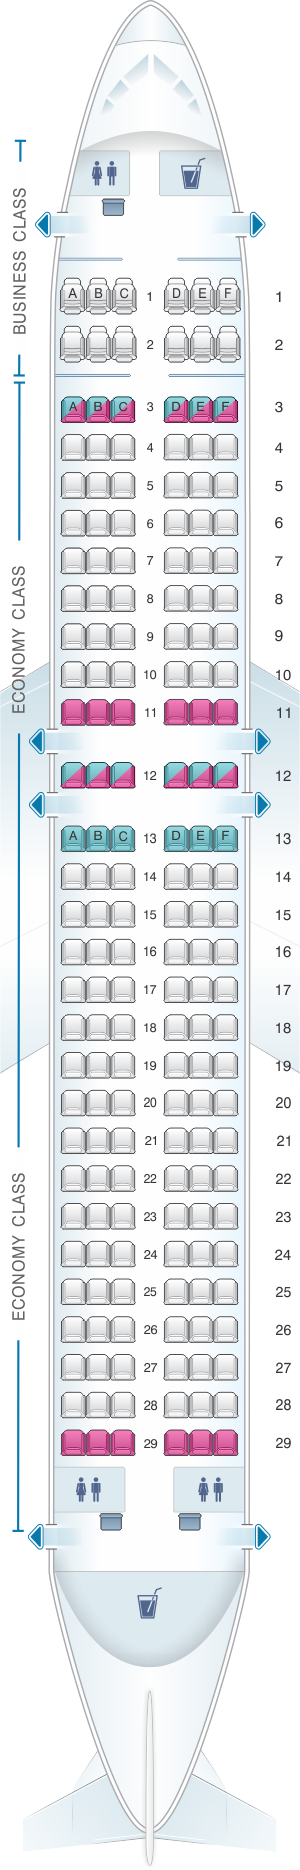 Seat map for Air Serbia Airbus A320